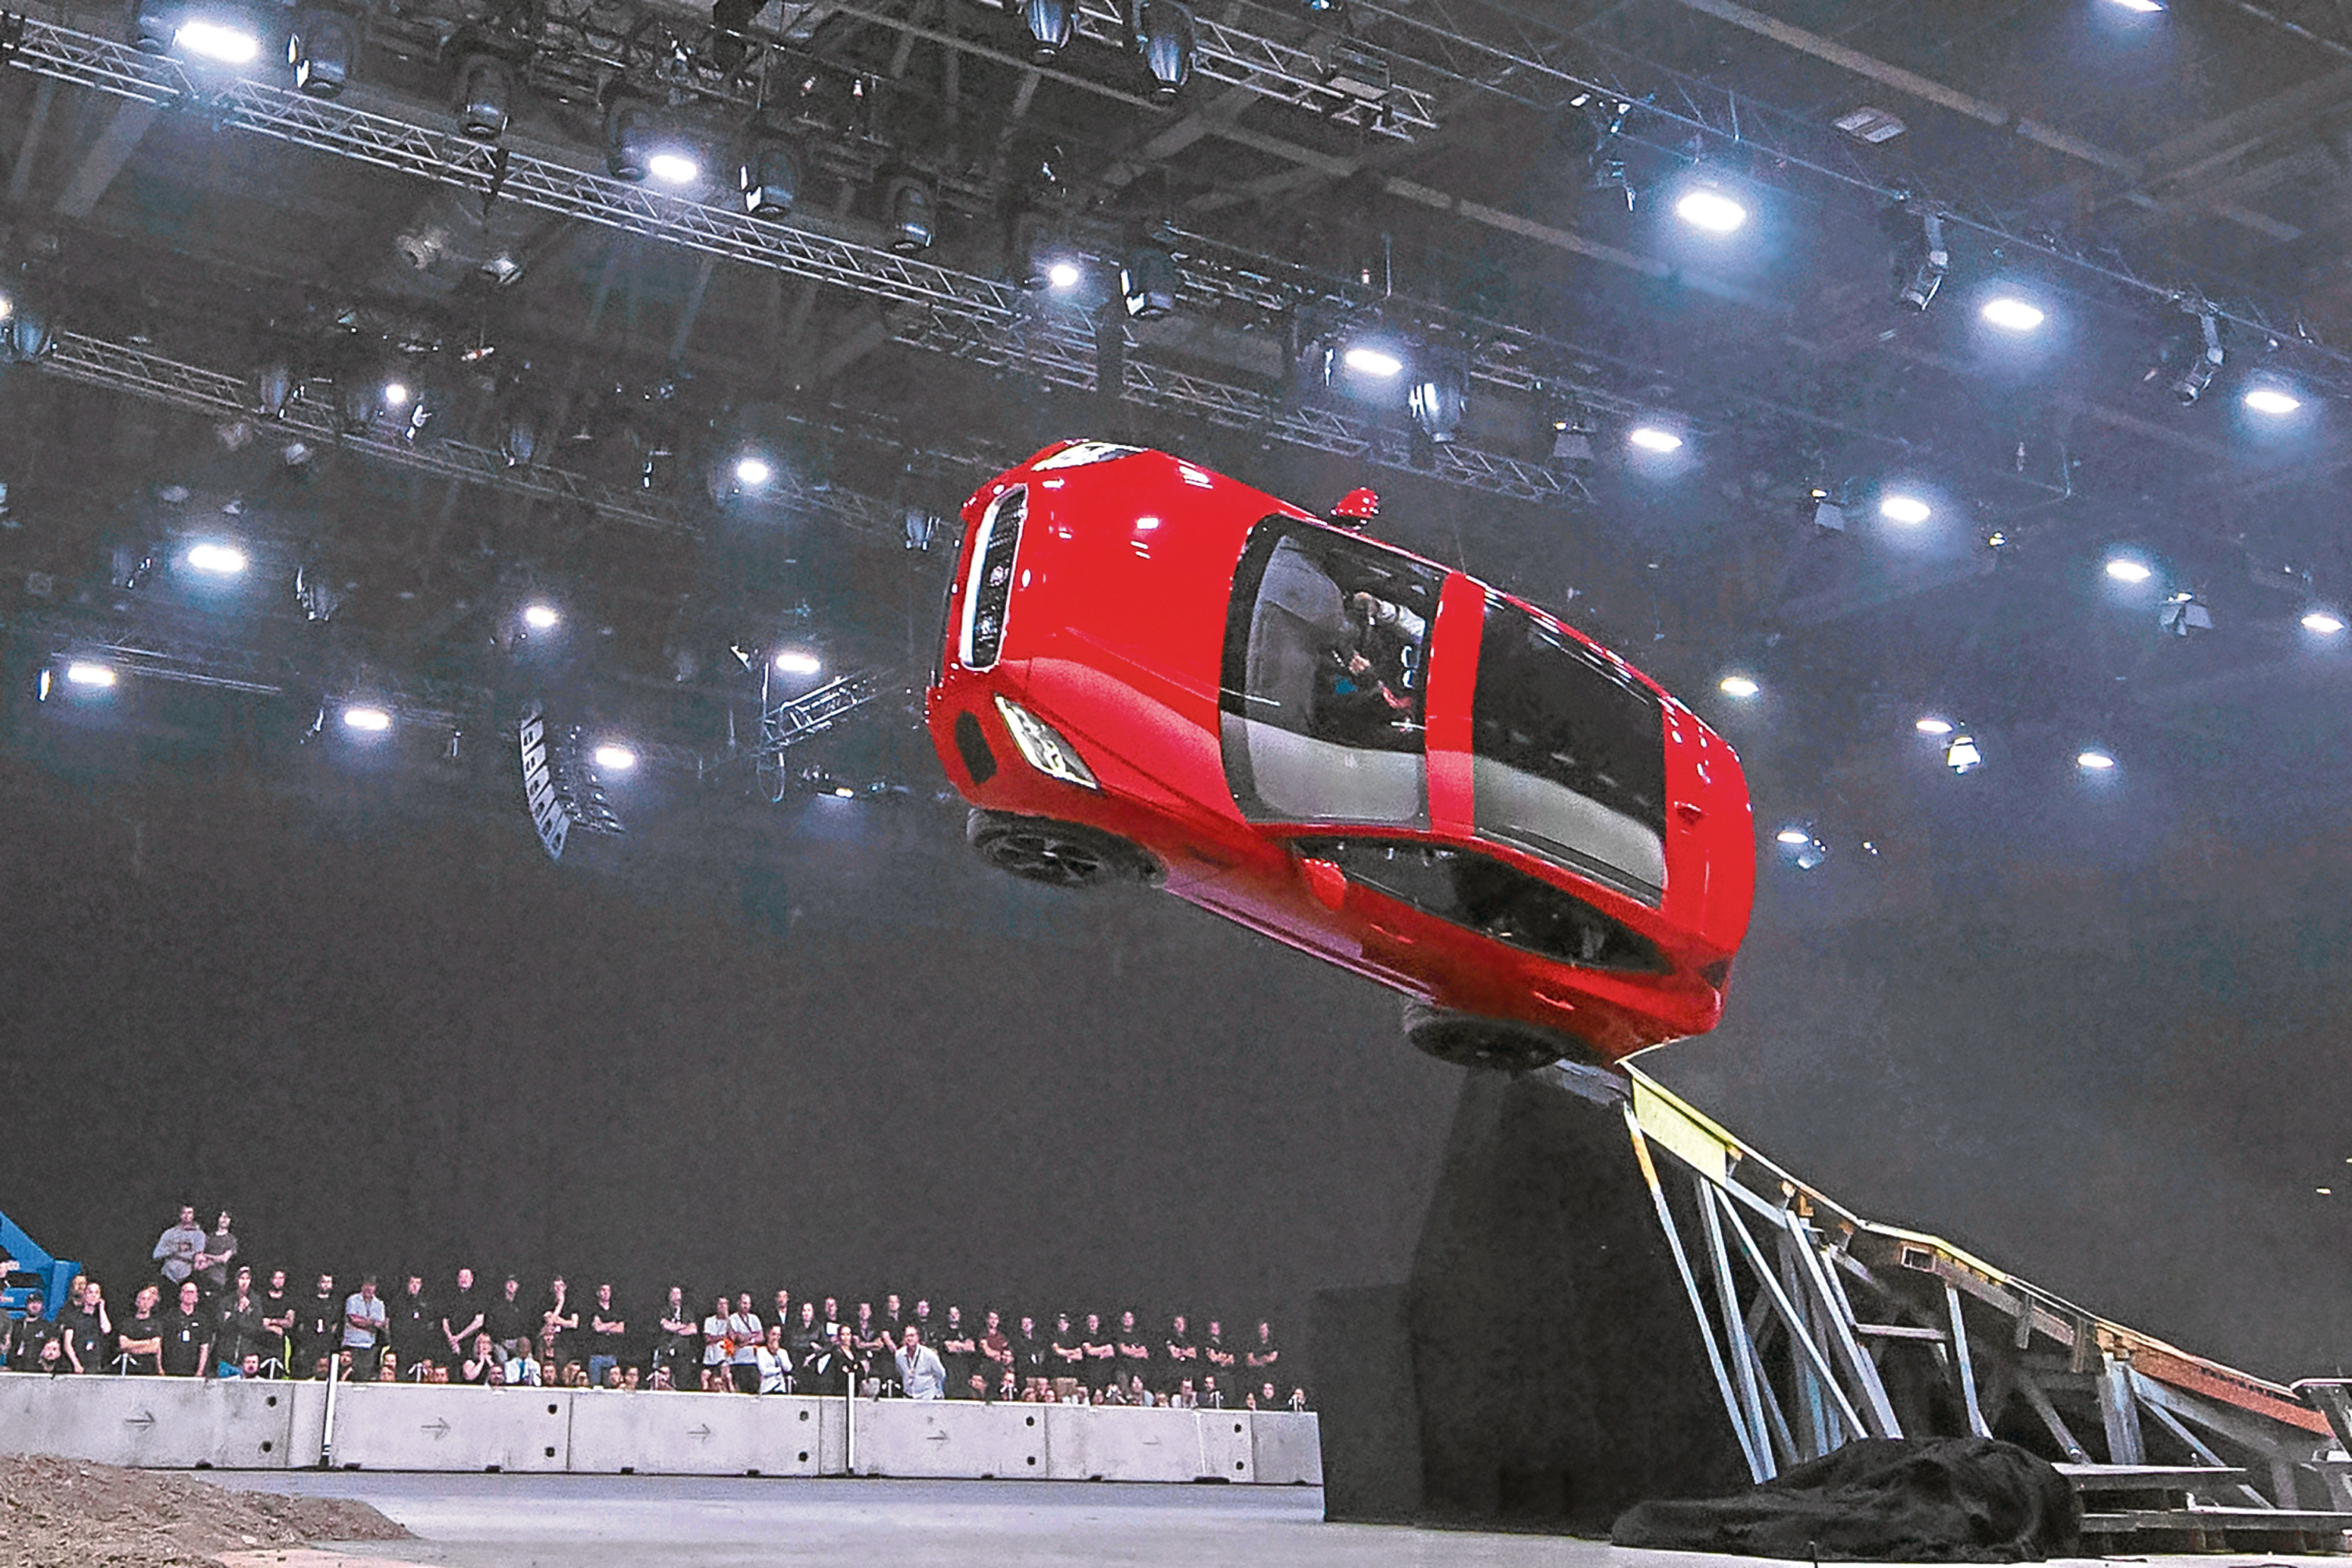 NOTE: IMAGE STRICTLY EMBARGOED UNTIL 20.00 BST, JULY 13th 2017. NO ONLINE USE PRIOR TO THIS TIME.Jaguar and stunt driver Terry Grant set a new Guinness World Record for longest barrel roll at the global launch of the new Jaguar E-PACE at ExCel London.